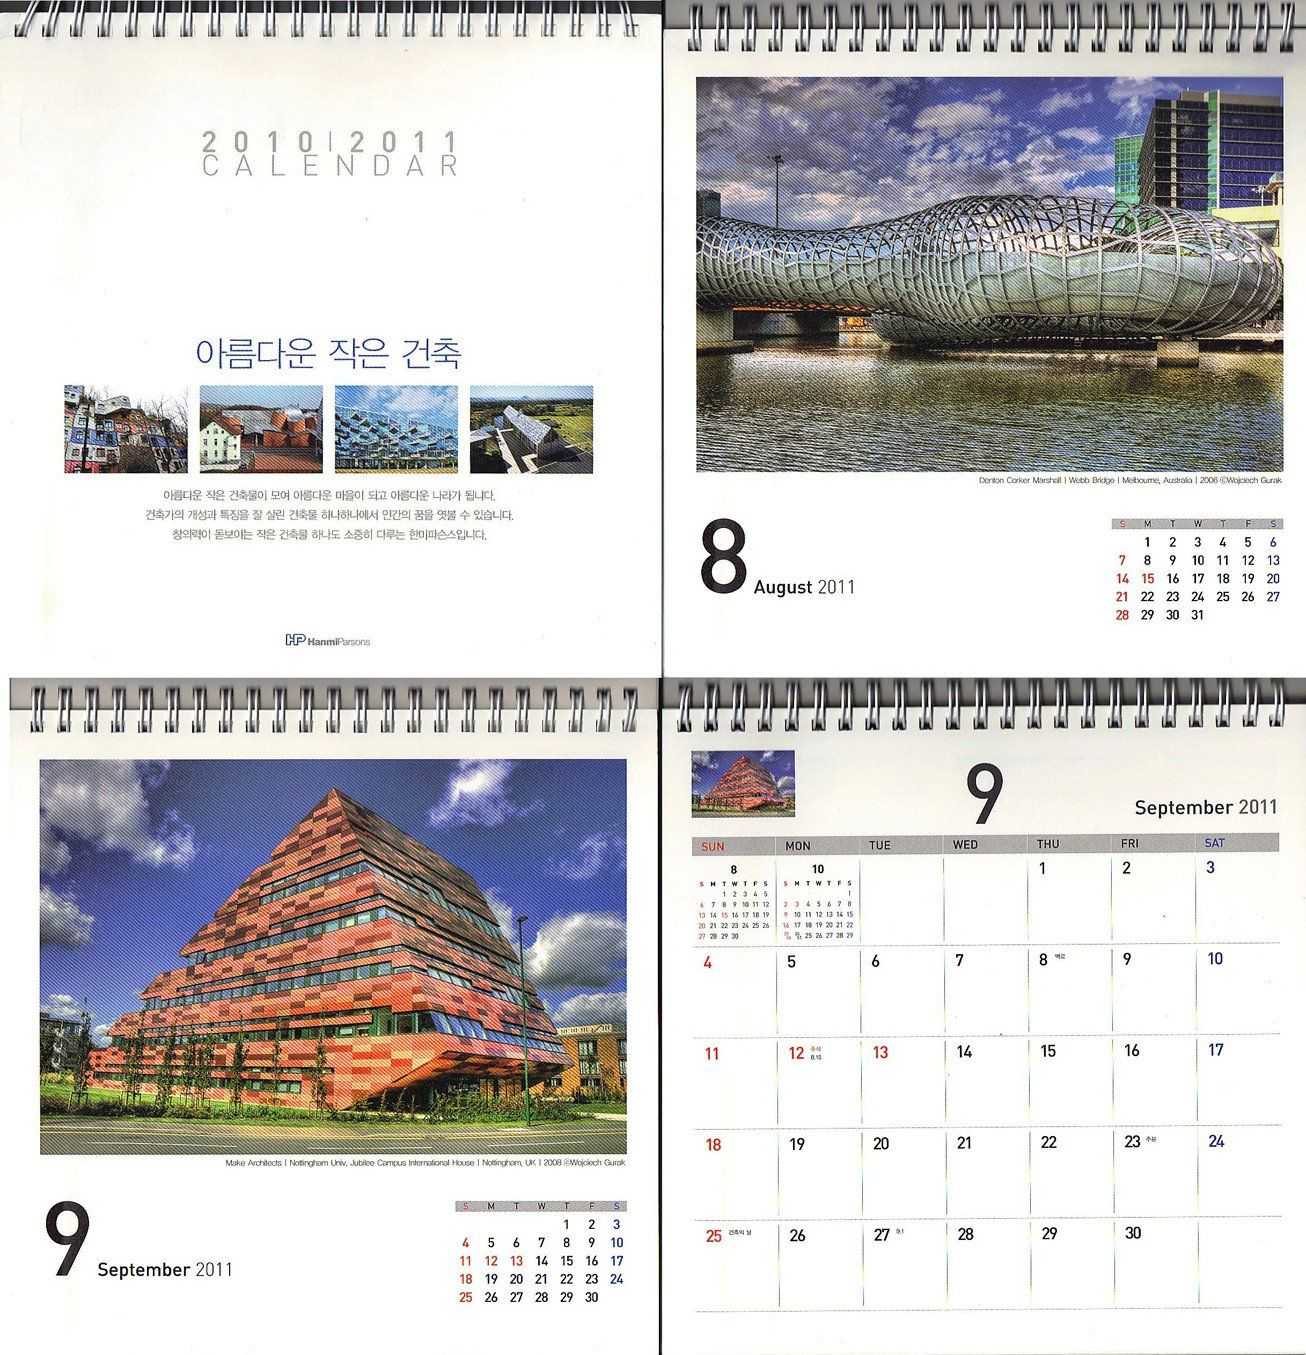 Hanmi Parsons 2011 Corporate Calendar For A Construction Company Based In South Korea